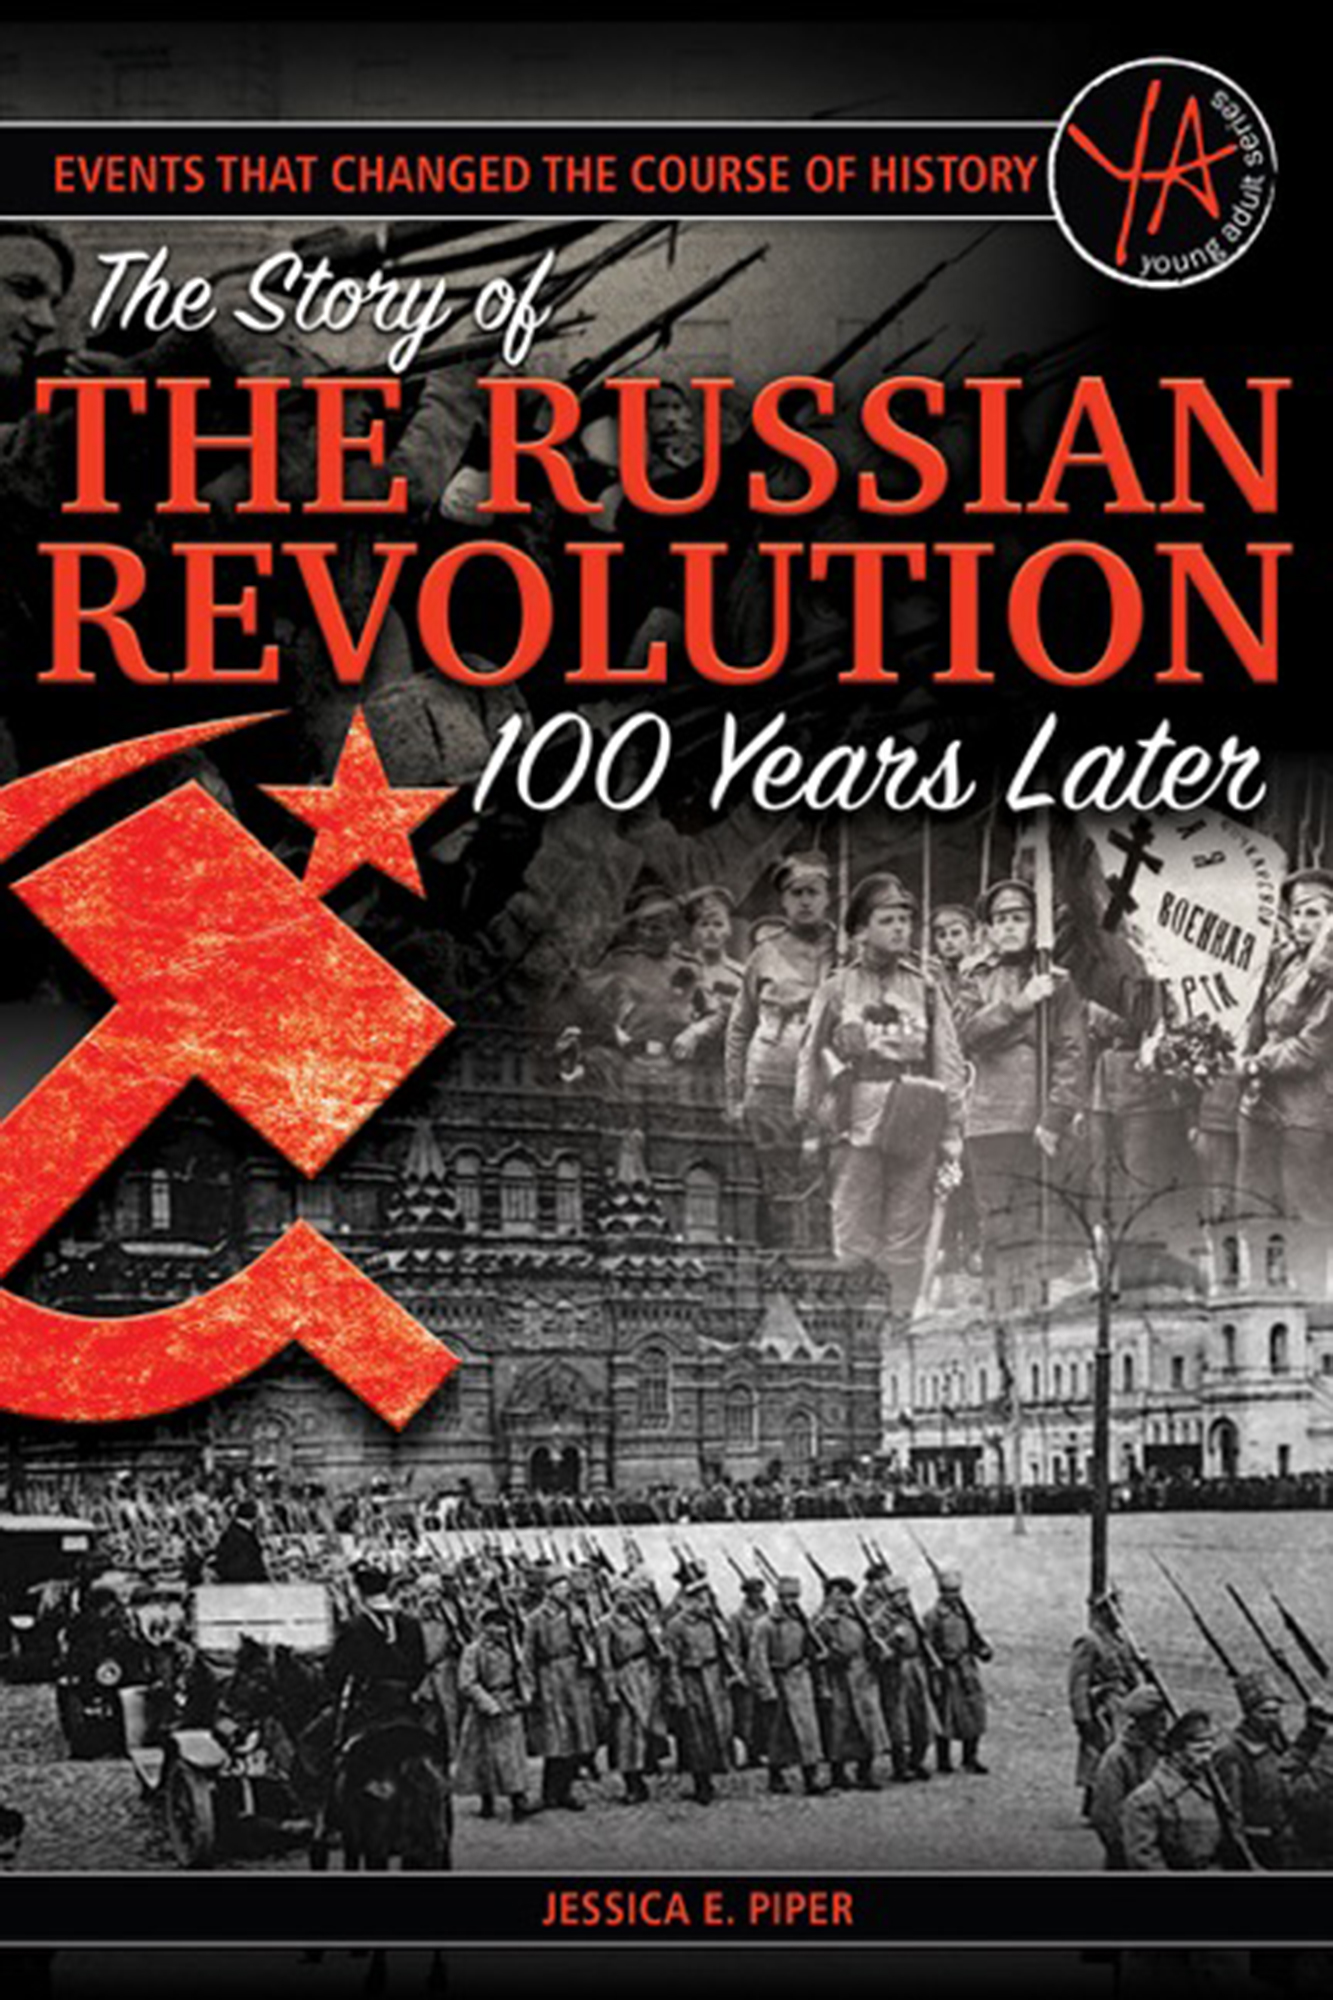 Events that Changed the Course of History The Story of the Russian Revolution 100 Years Later